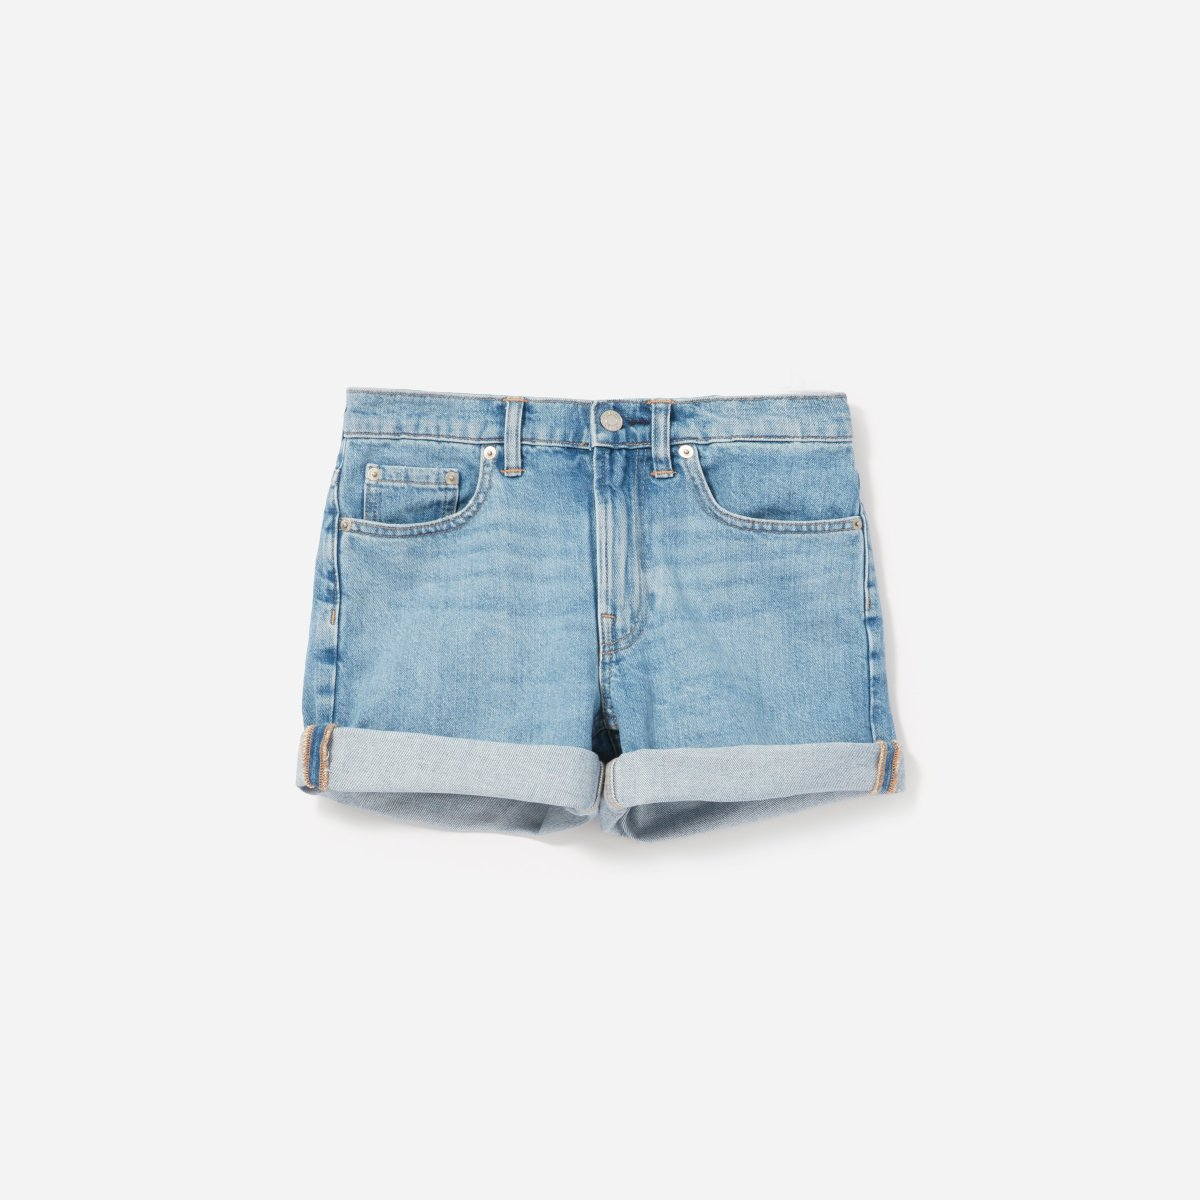 6e4cfdeee182 Women's Denim Short | Everlane